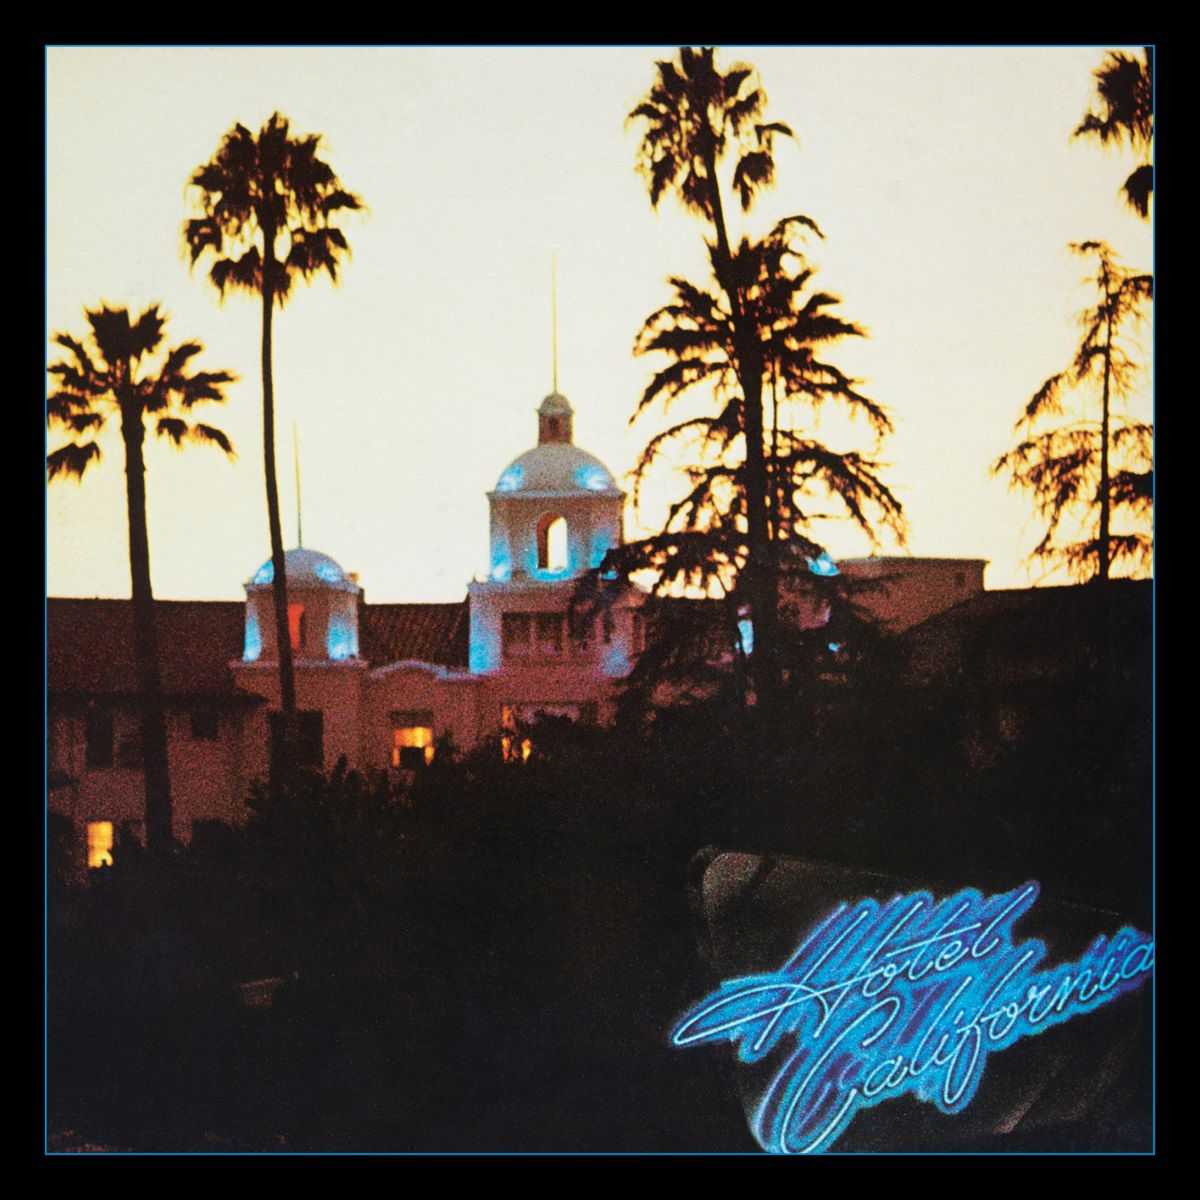 Eagles – Hotel California. 40th Anniversary Expanded Edition (2 CD) cd диск smokie gold 1975 2015 40th anniversary edition 2 cd